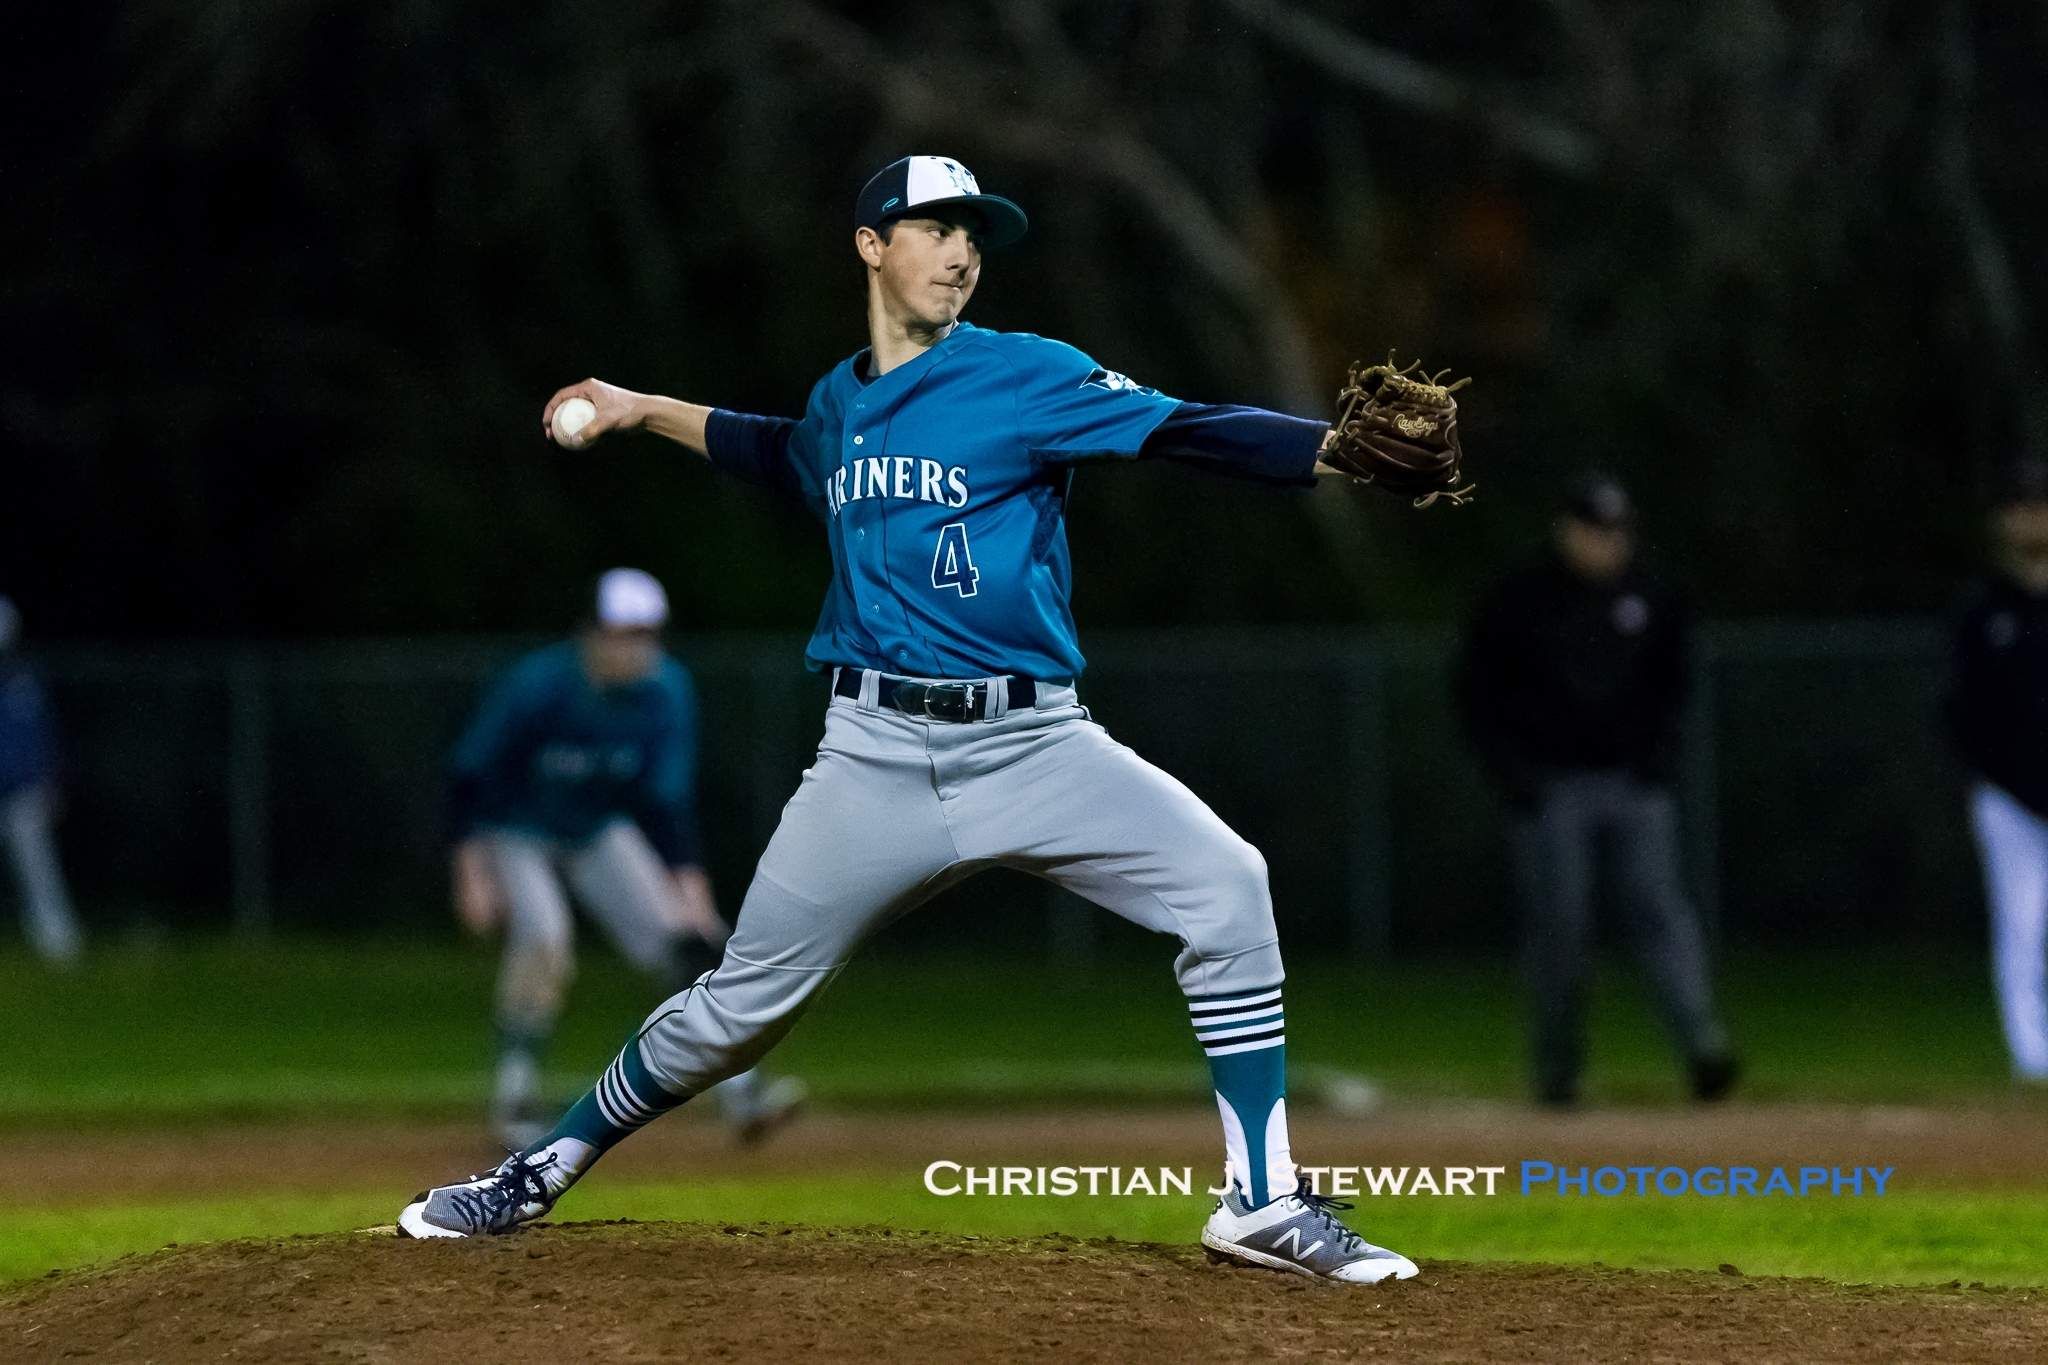 Victoria Mariner pitcher Aidan Heintz would keep the Eagles hitless and scoreless over the final two innings Tuesday, but it was too little too late as the Mariners fell to the Eagles 9-7 (Photo: Christian J. Stewart)